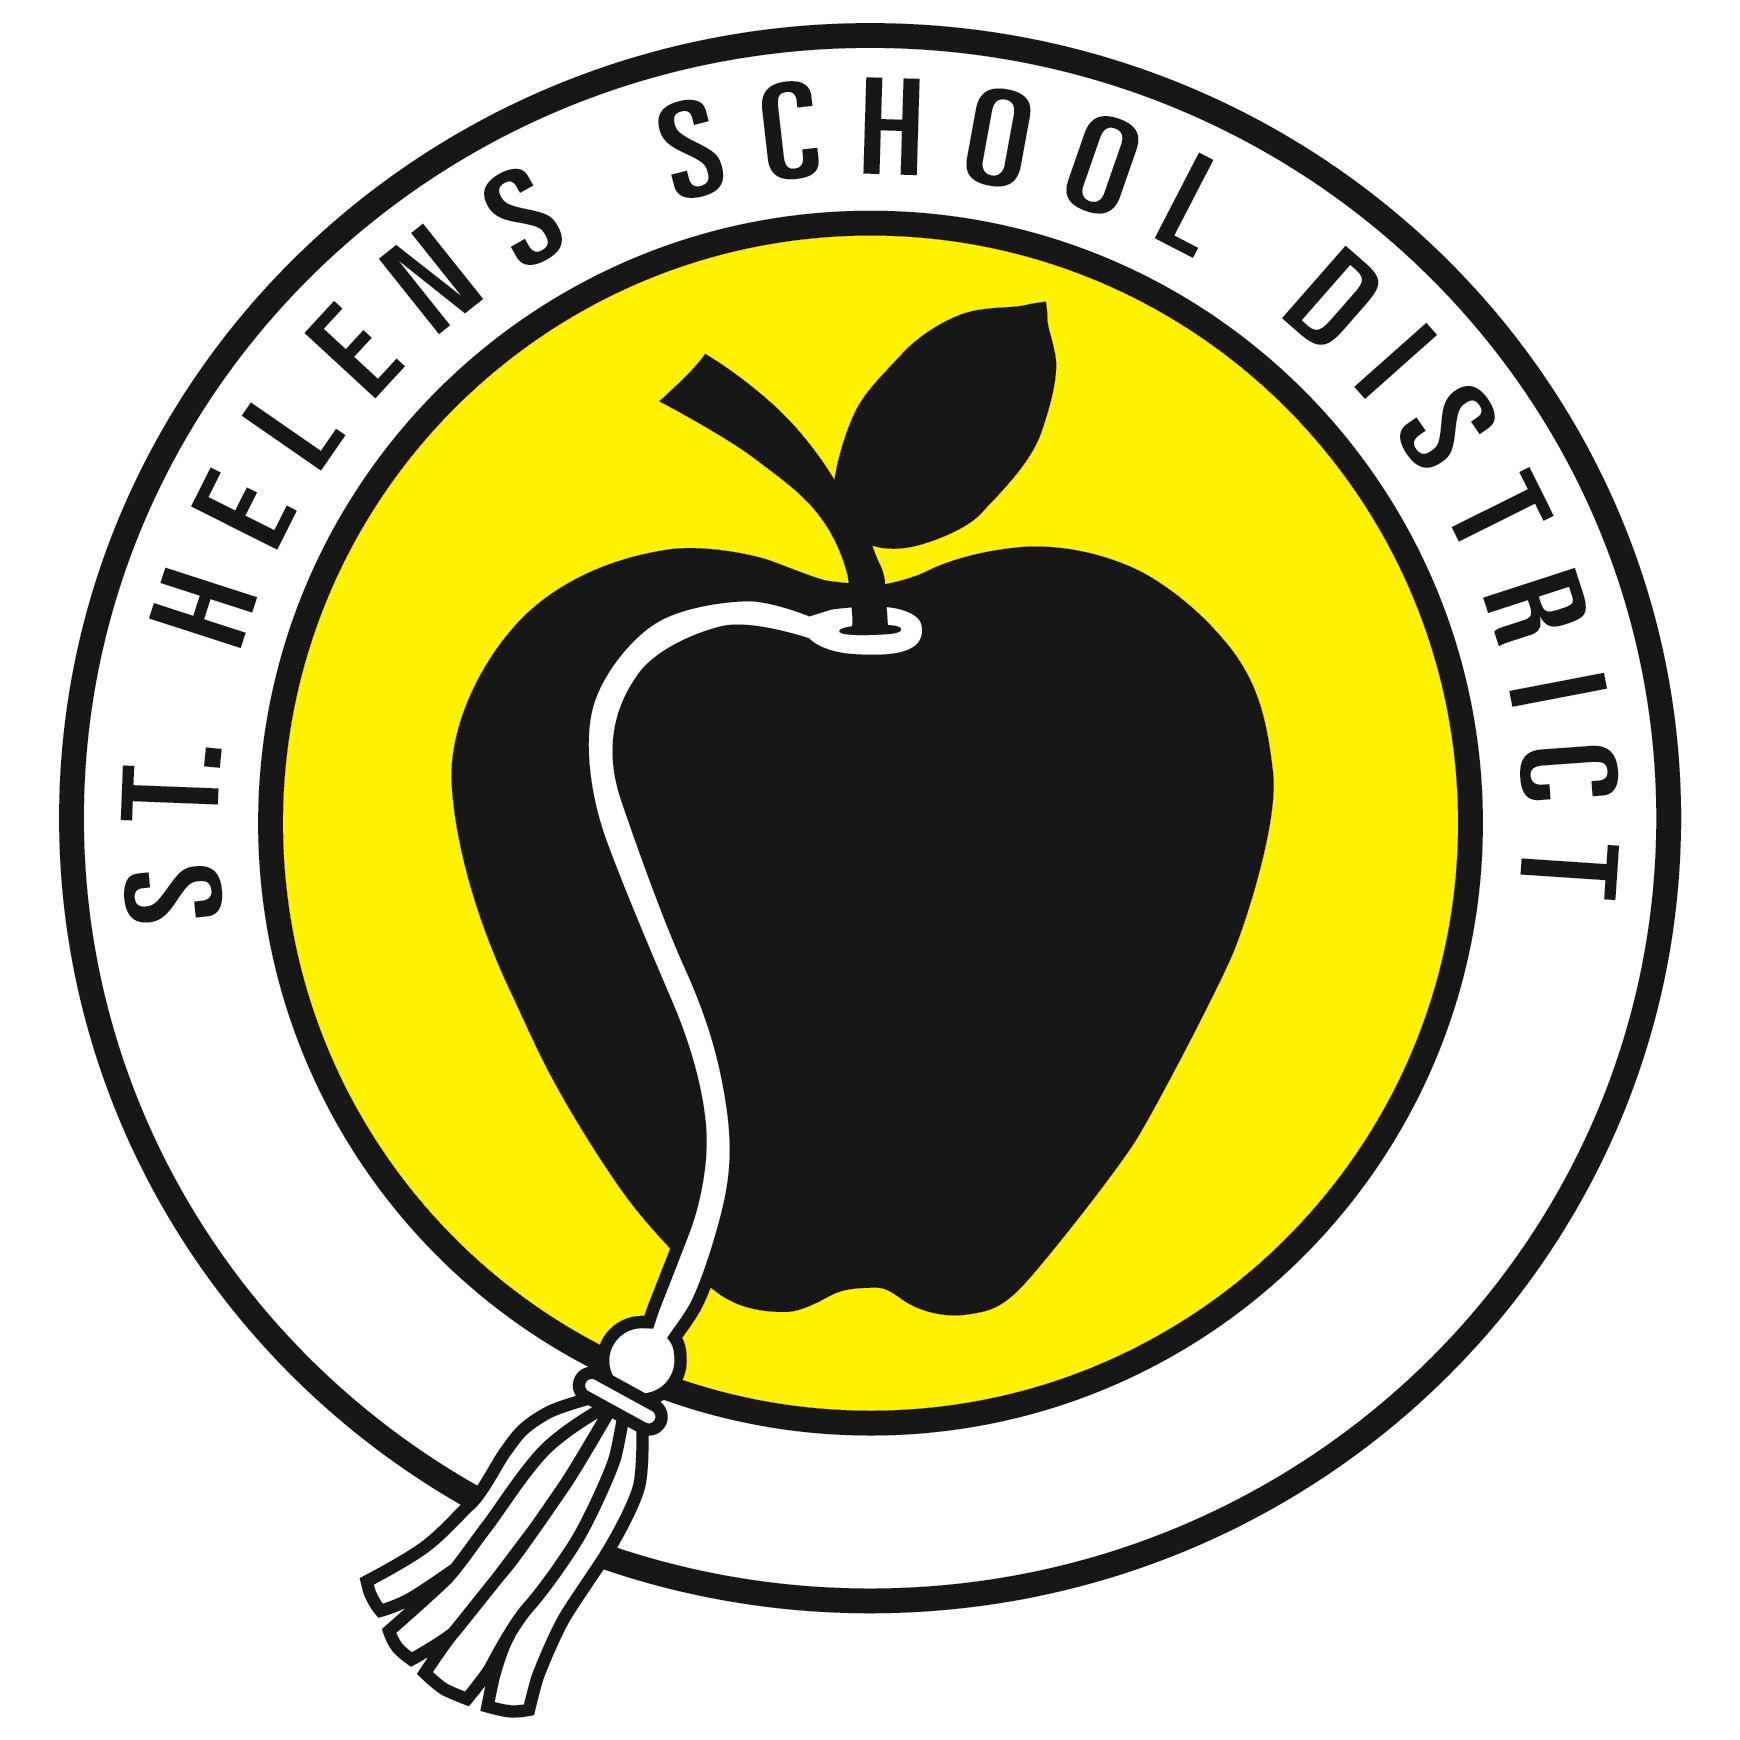 St. Helens School District / Calendar with St Helens School District Calendar